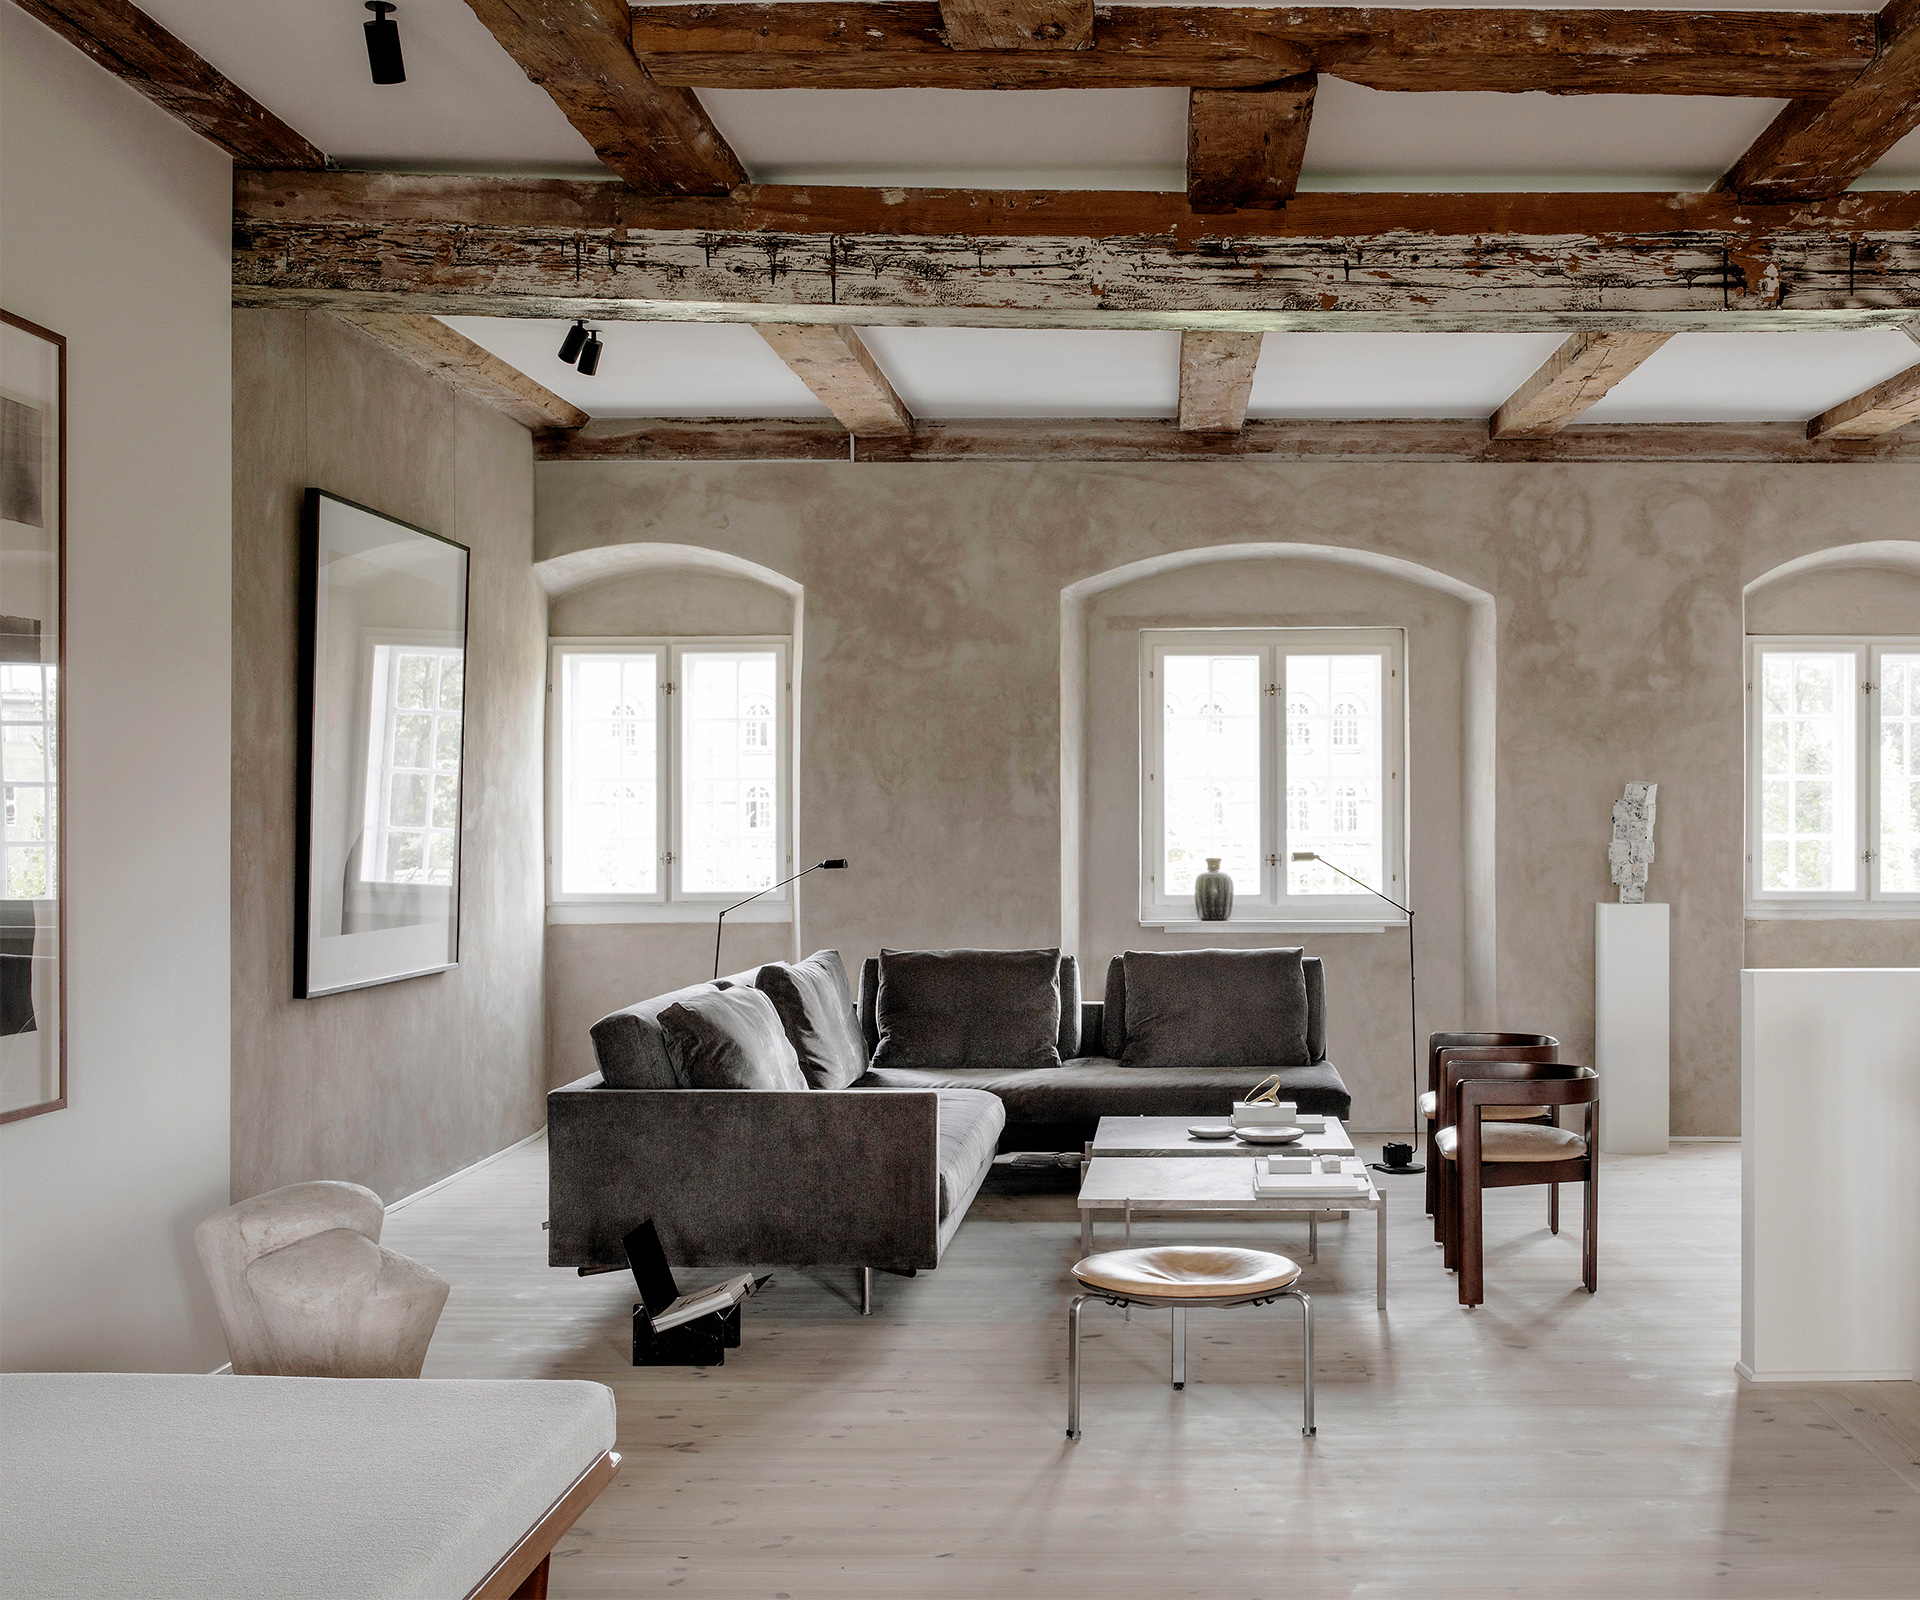 Exposed timber beams give this home an industrial edge